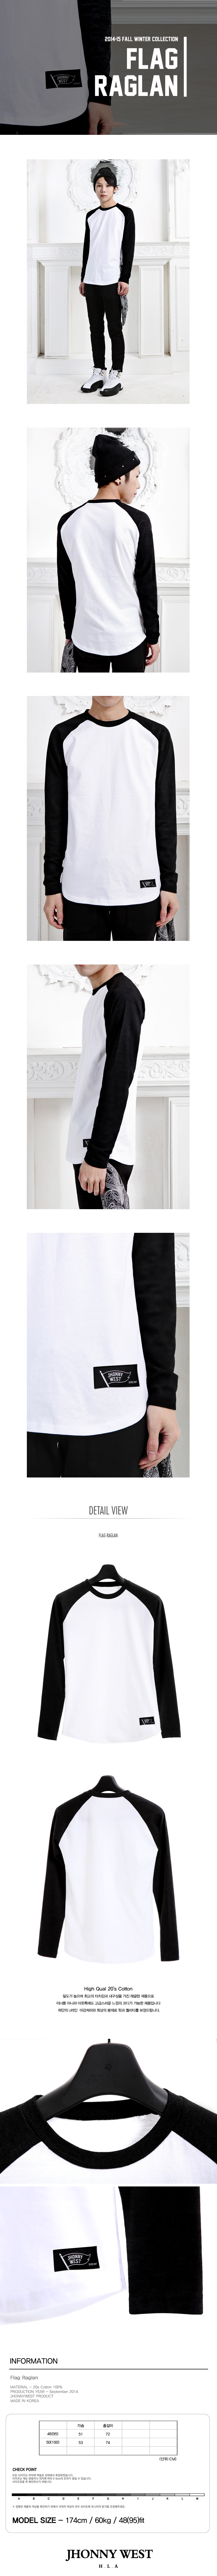 쟈니웨스트(JHONNY WEST) Flag Raglan (Black)